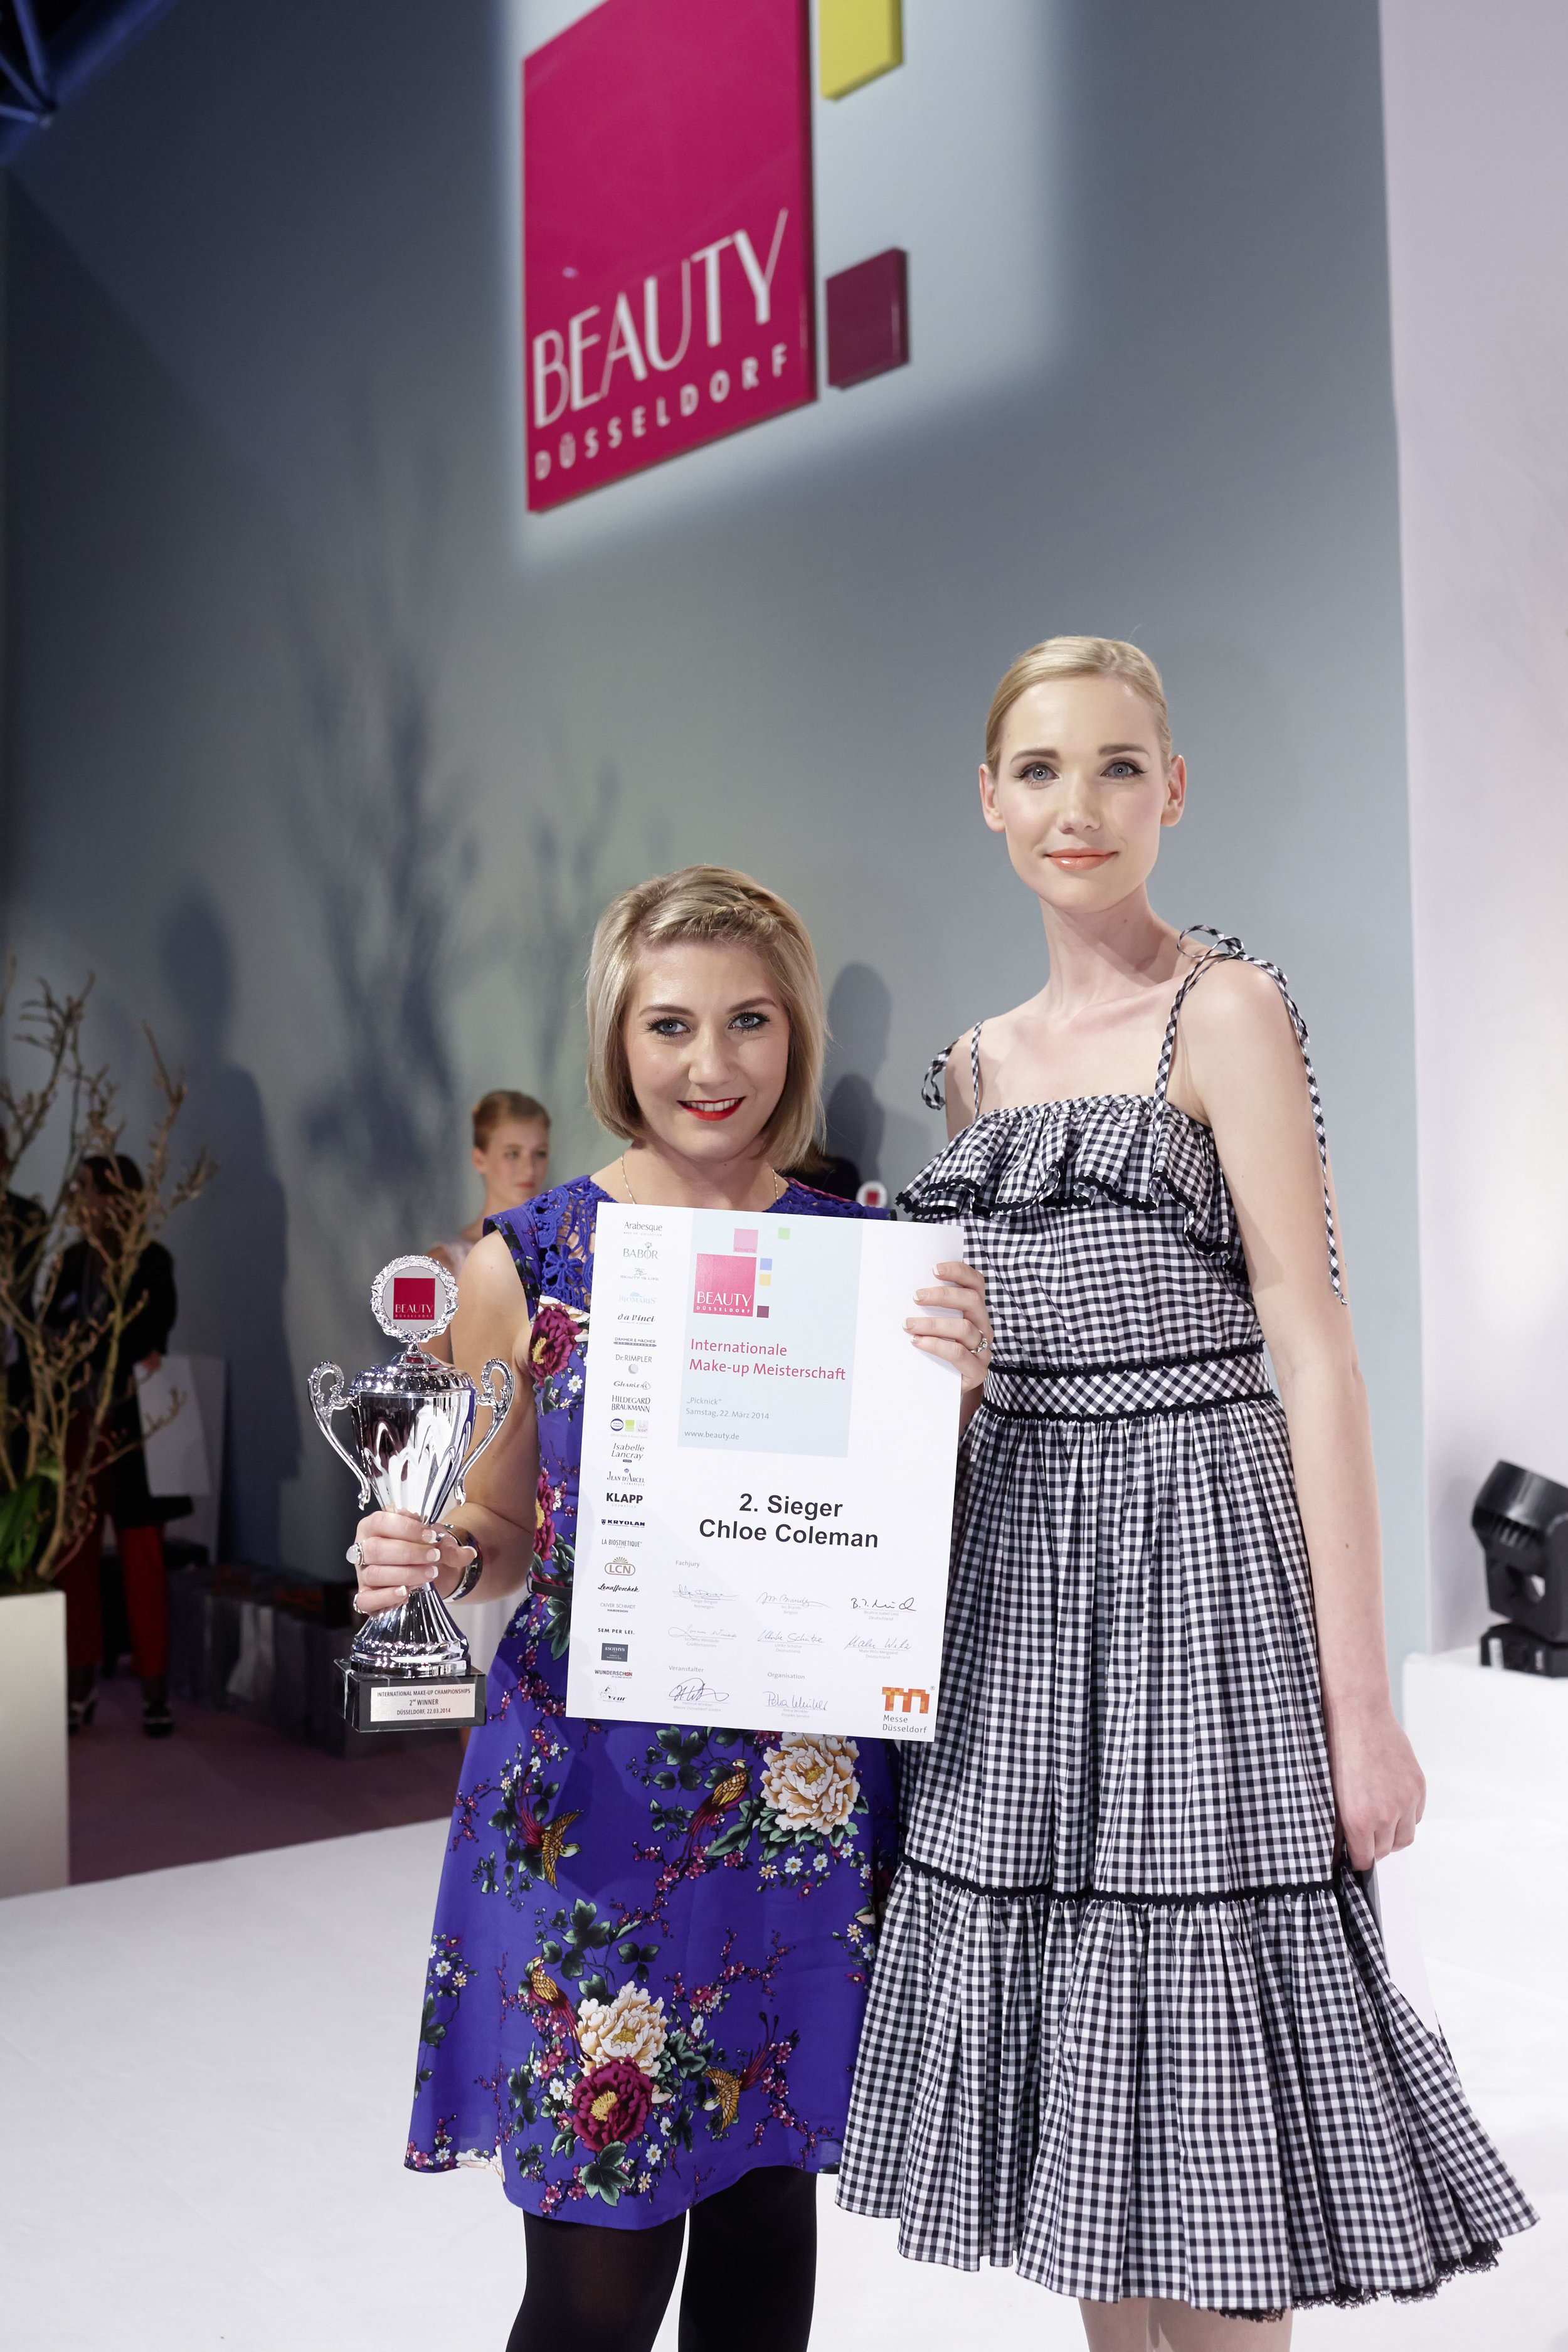 Winning Second place at the International Make-up Championships, Beauty Dusseldorf, Germany 2014